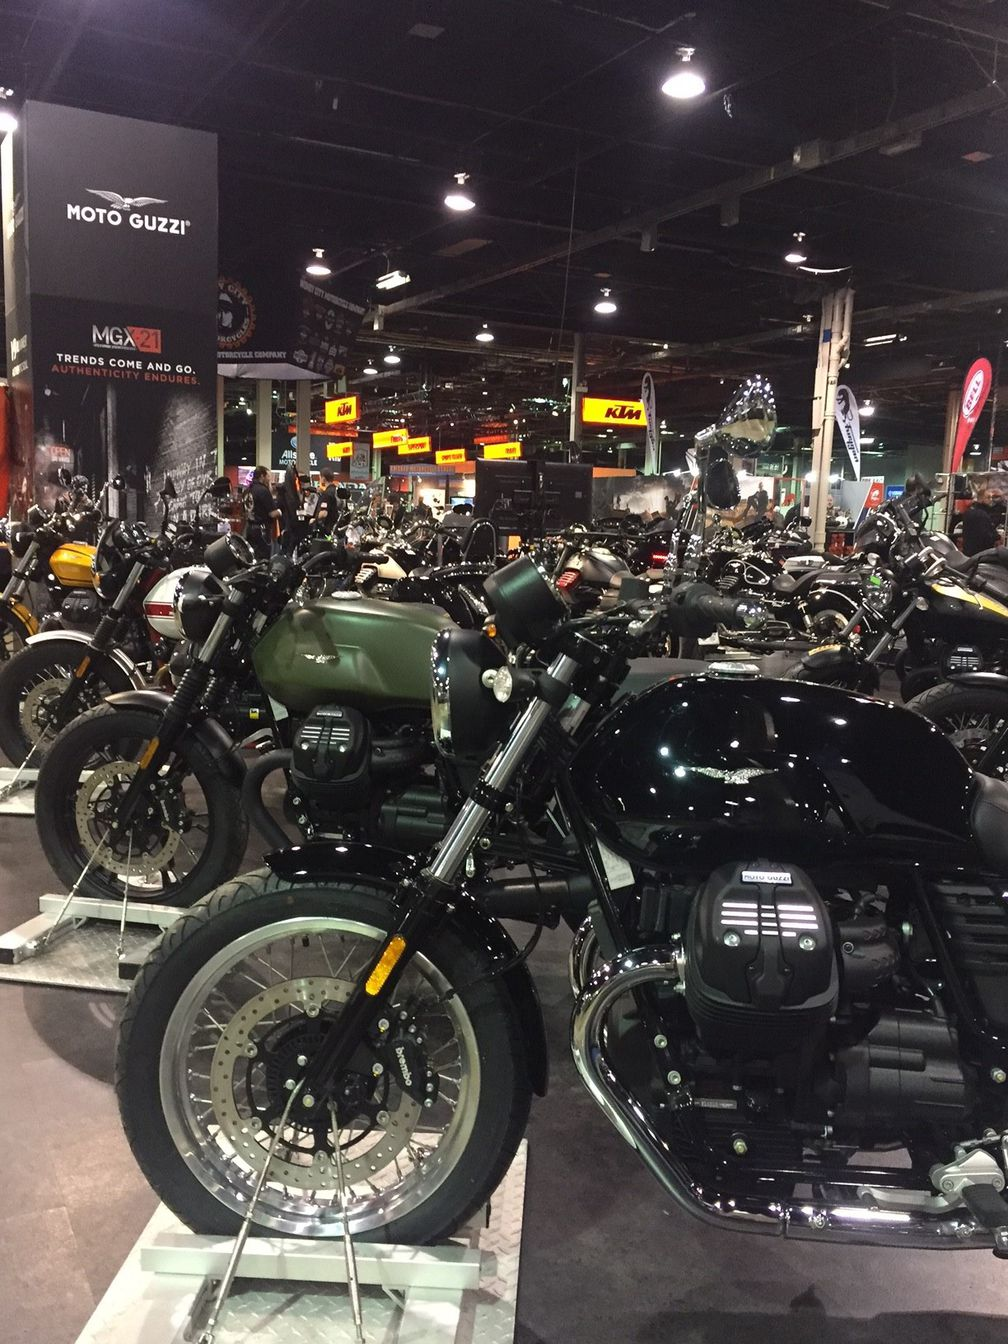 2017 Moto Guzzi V7 Iii Models And Pricing Announced Cycle World